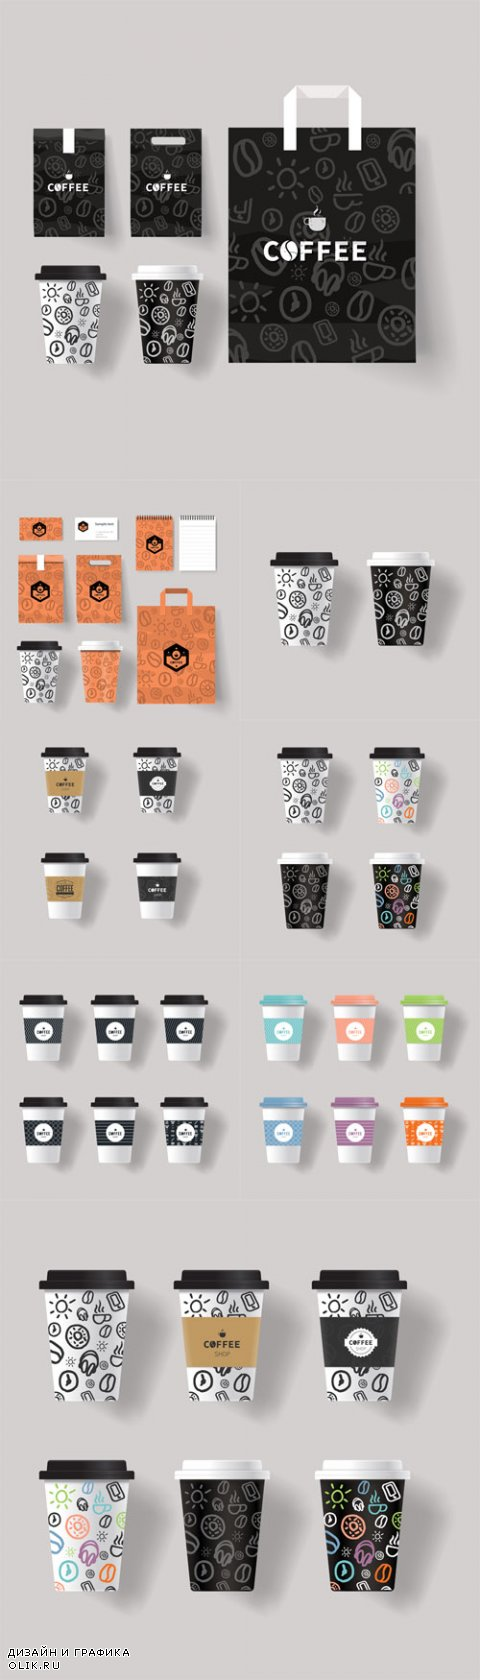 Vector Coffee Shop Branding Mock up with Coffee Cup and Package Design Template